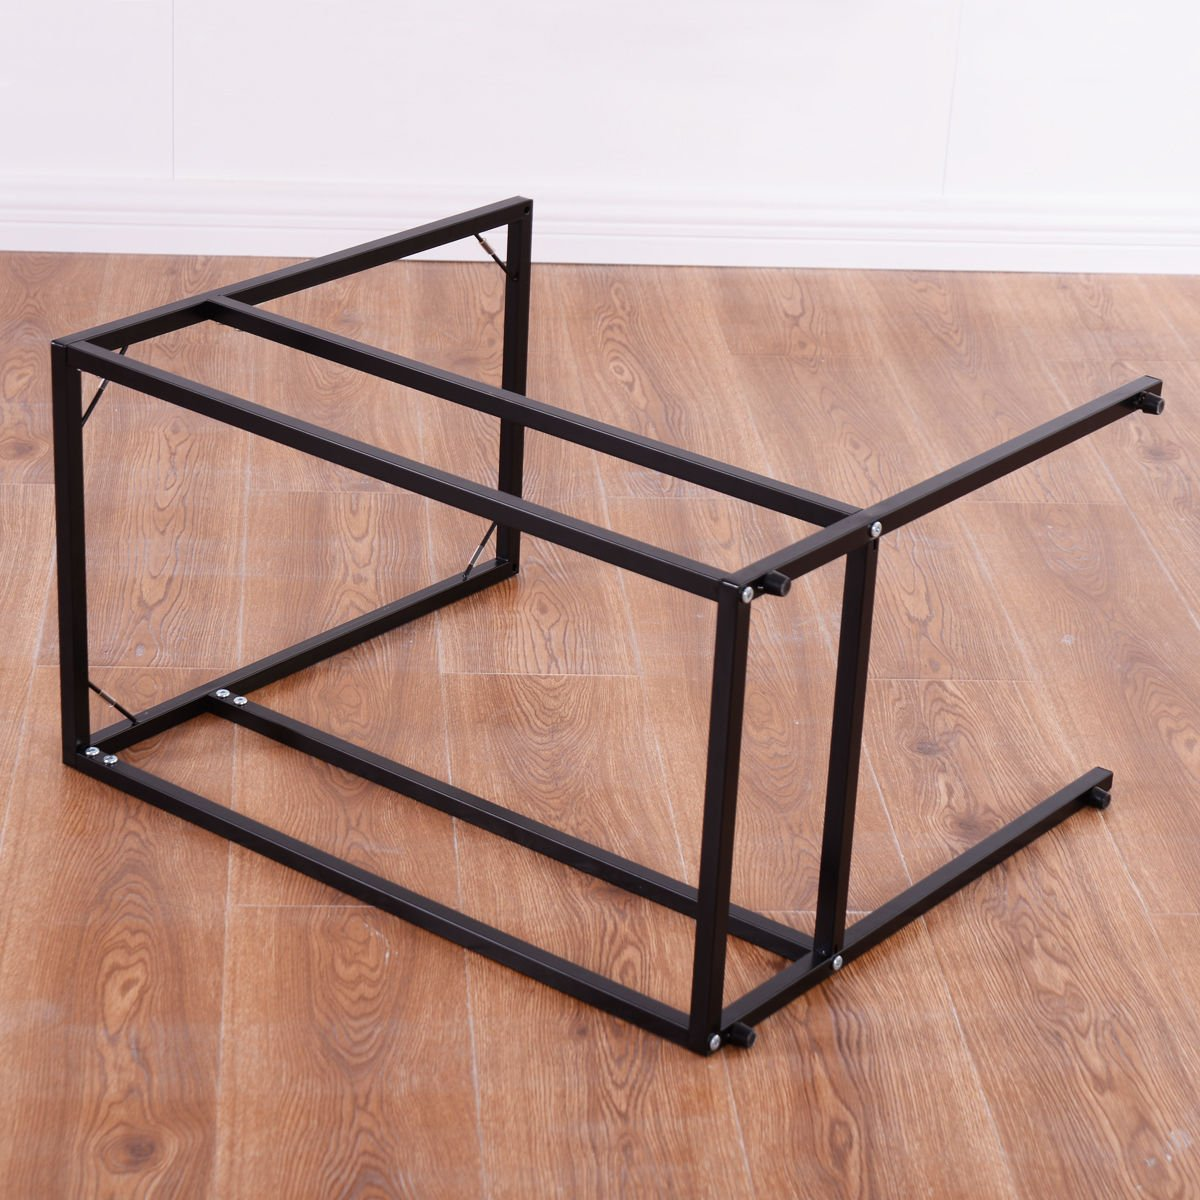 SKEMiDEX---Coffee Tray Side Sofa End Table Ottoman Couch Stand TV Lap Snack W/Glass Top New. Can be used as end tables, lamp tables, decorative displays tables, or simply accent pieces by SKEMiDEX (Image #8)